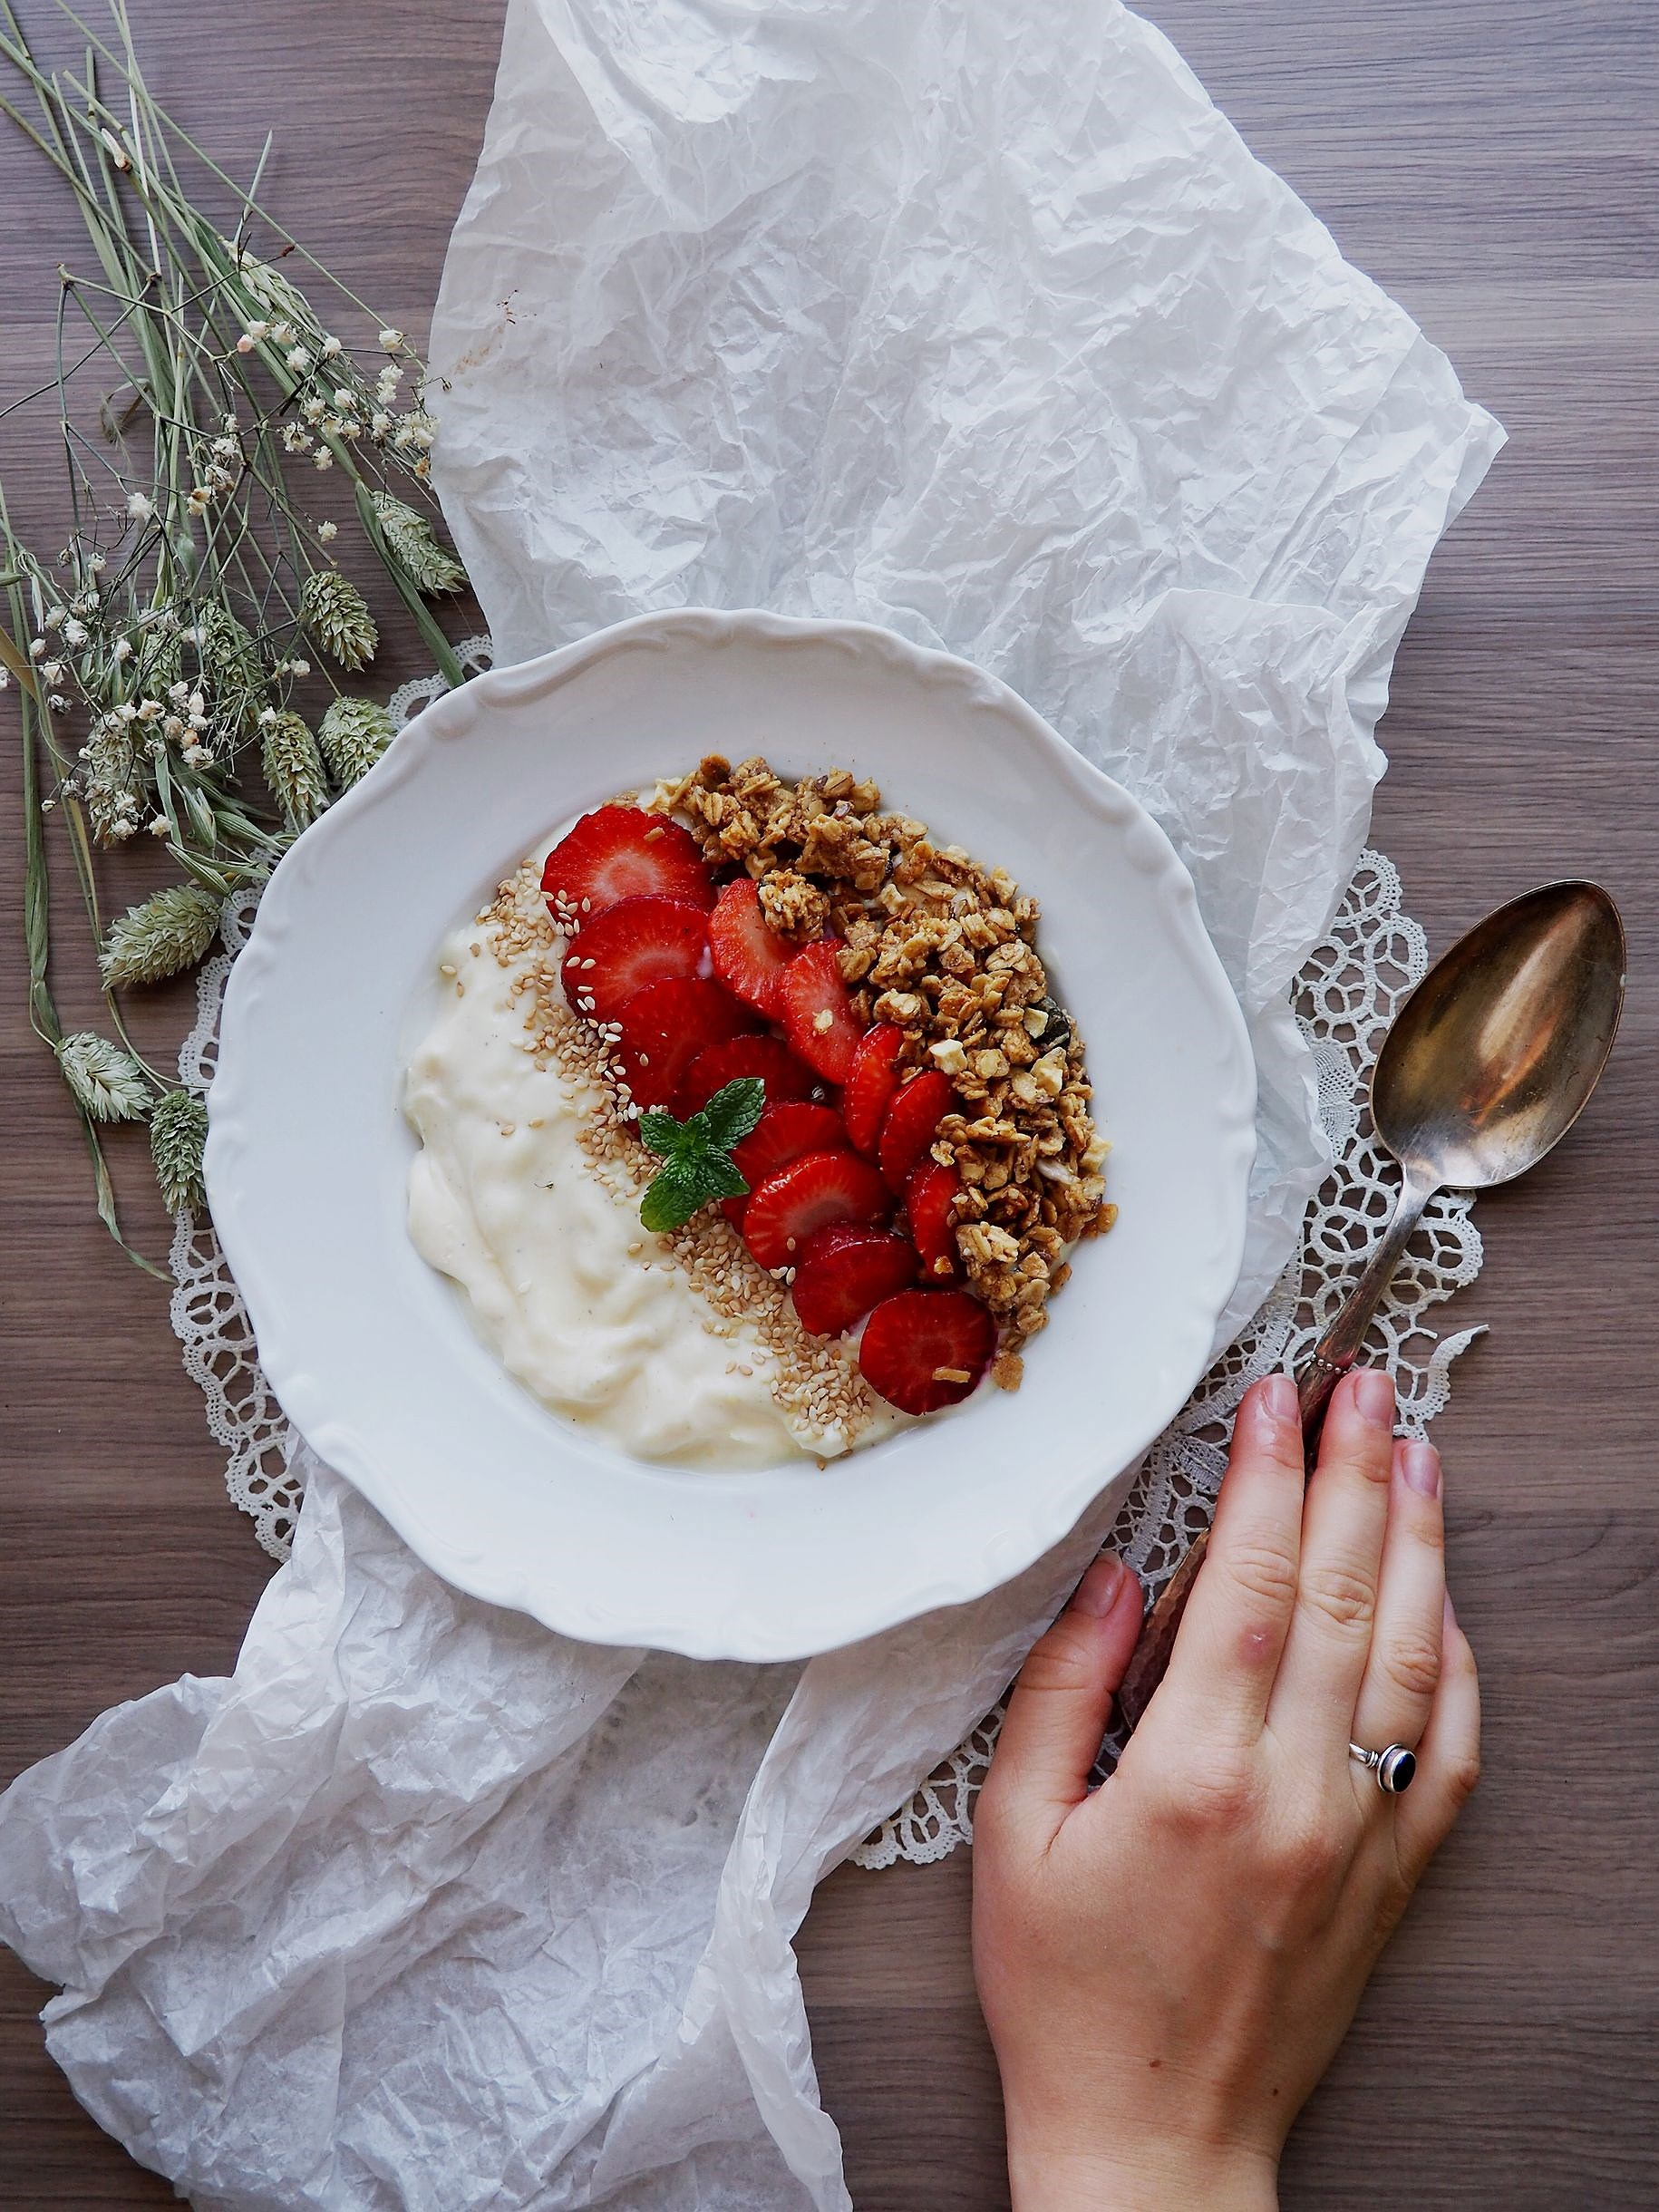 Swedish Summer in a Bowl - Vanilla Soygurt with Granola, Fresh strawberries and Spearmint